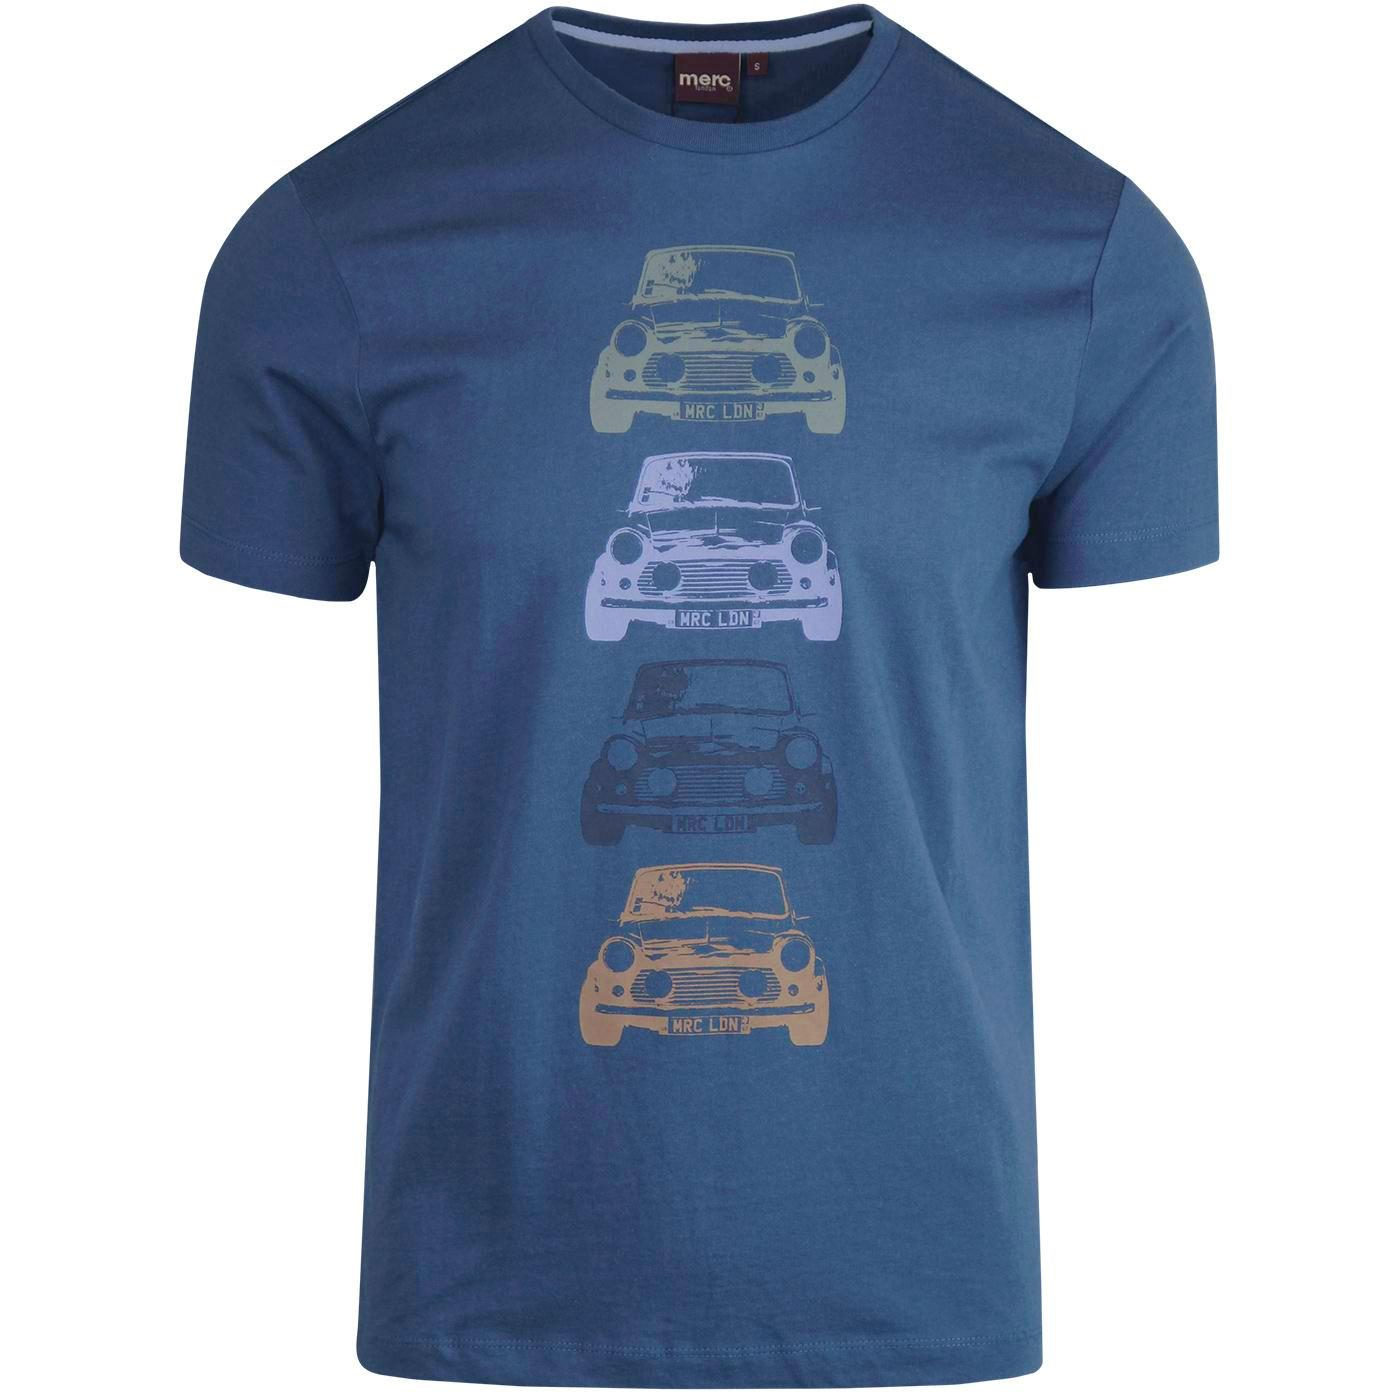 Kew MERC Retro Mod Mini Graphic Tee (Bright Blue)